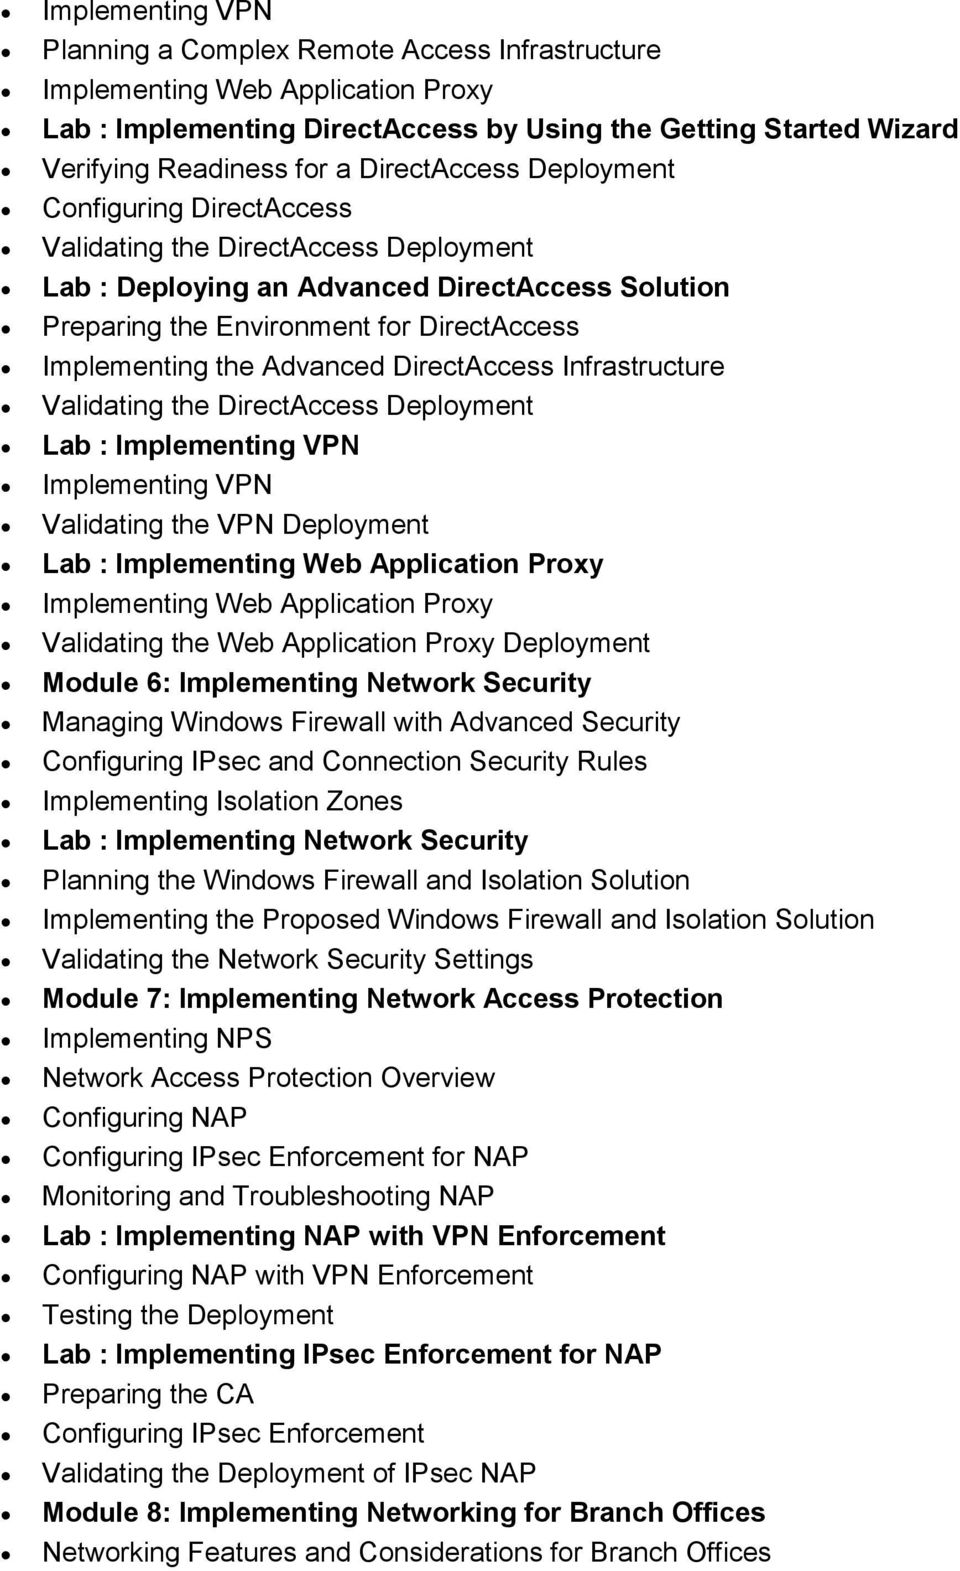 Advanced DirectAccess Infrastructure Validating the DirectAccess Deployment Lab : Implementing VPN Implementing VPN Validating the VPN Deployment Lab : Implementing Web Application Proxy Implementing